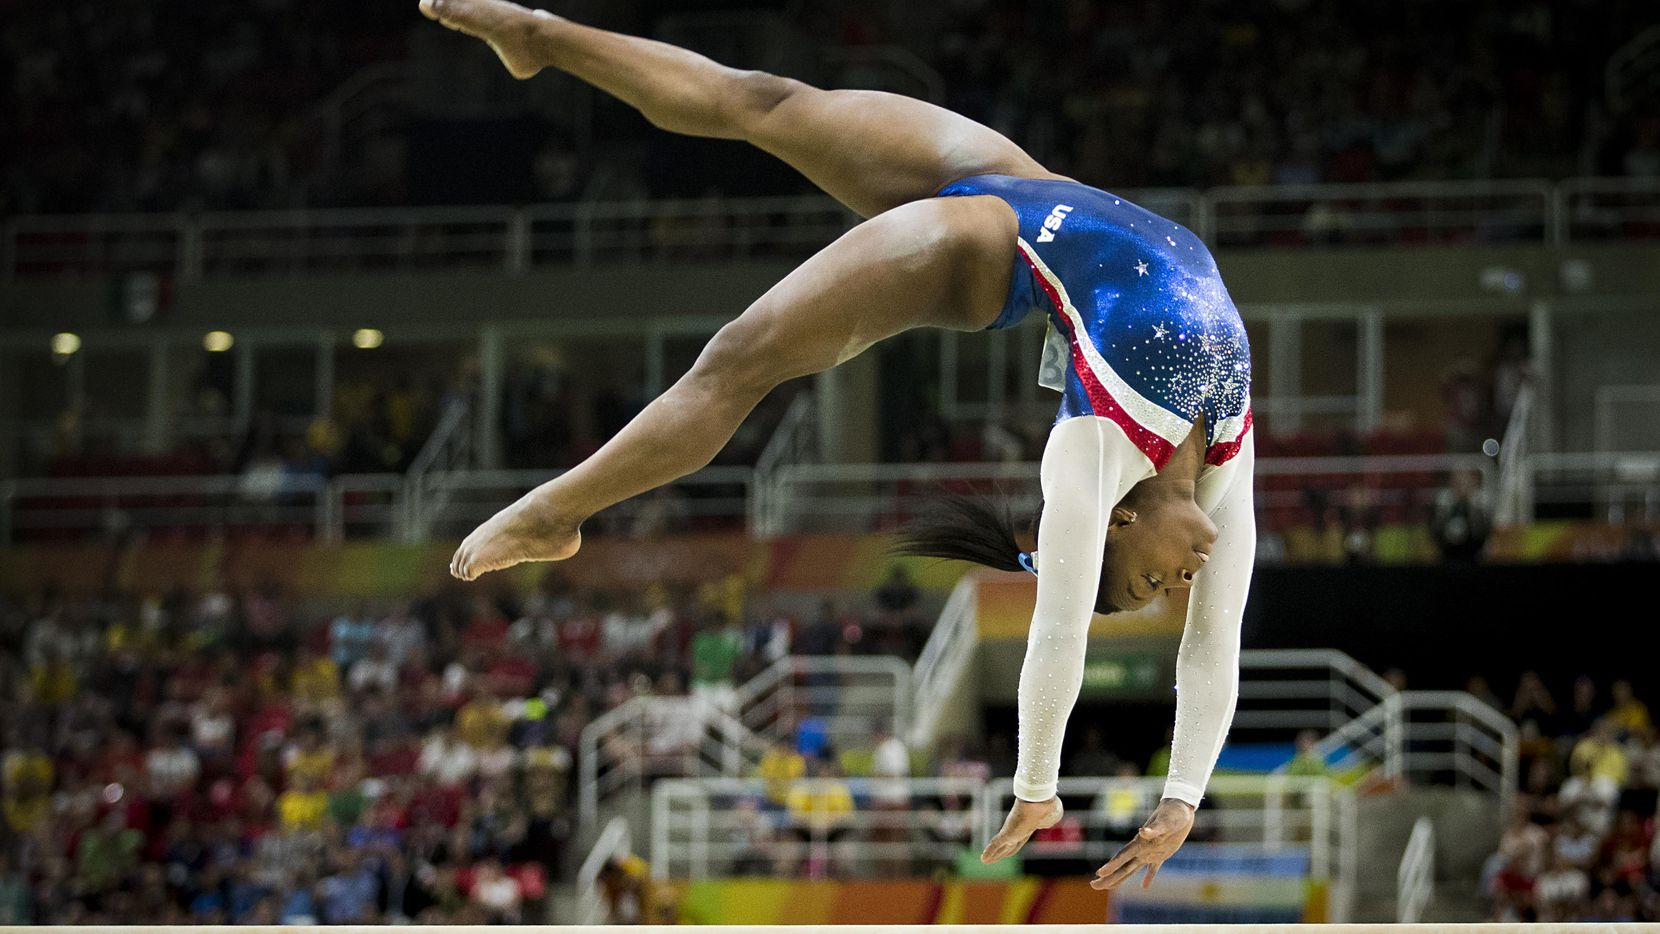 Simone Biles of the United States competes on the balance beam during the women's gymnastics all around final at the Rio 2016 Olympic Games on Thursday, Aug. 11, 2016, in Rio de Janeiro.